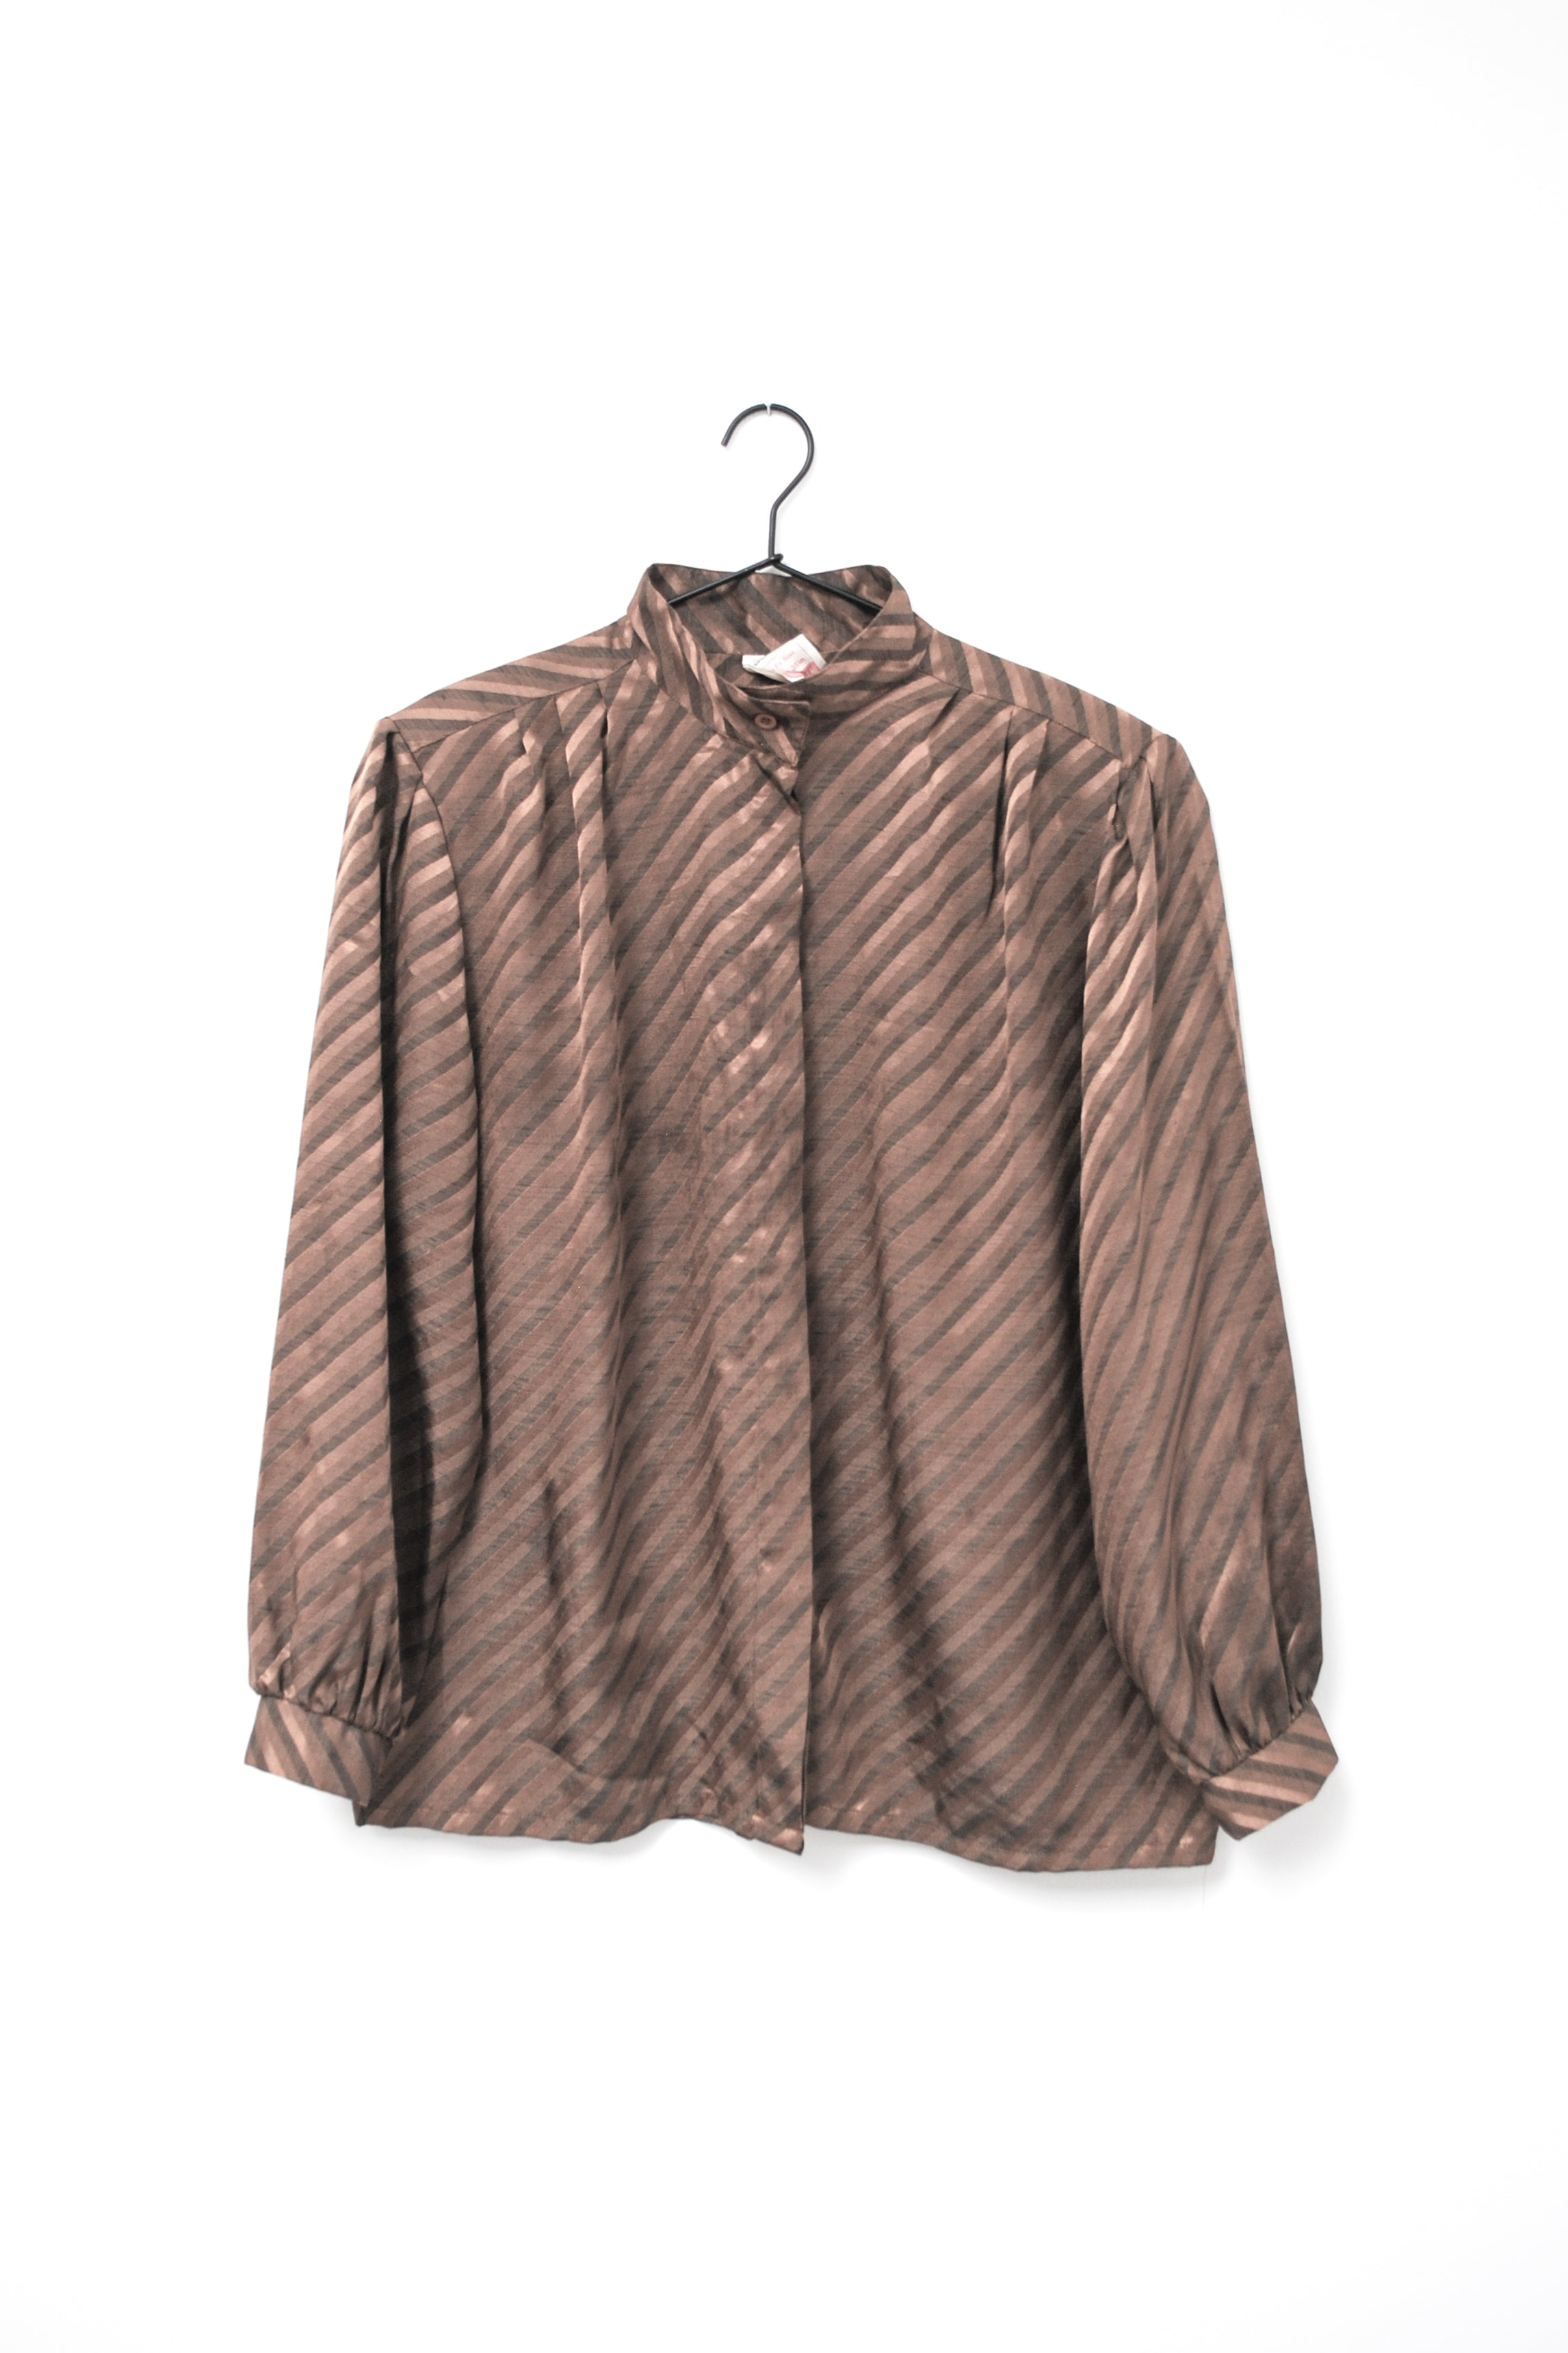 Vintage Brown Striped Blouse / S-M